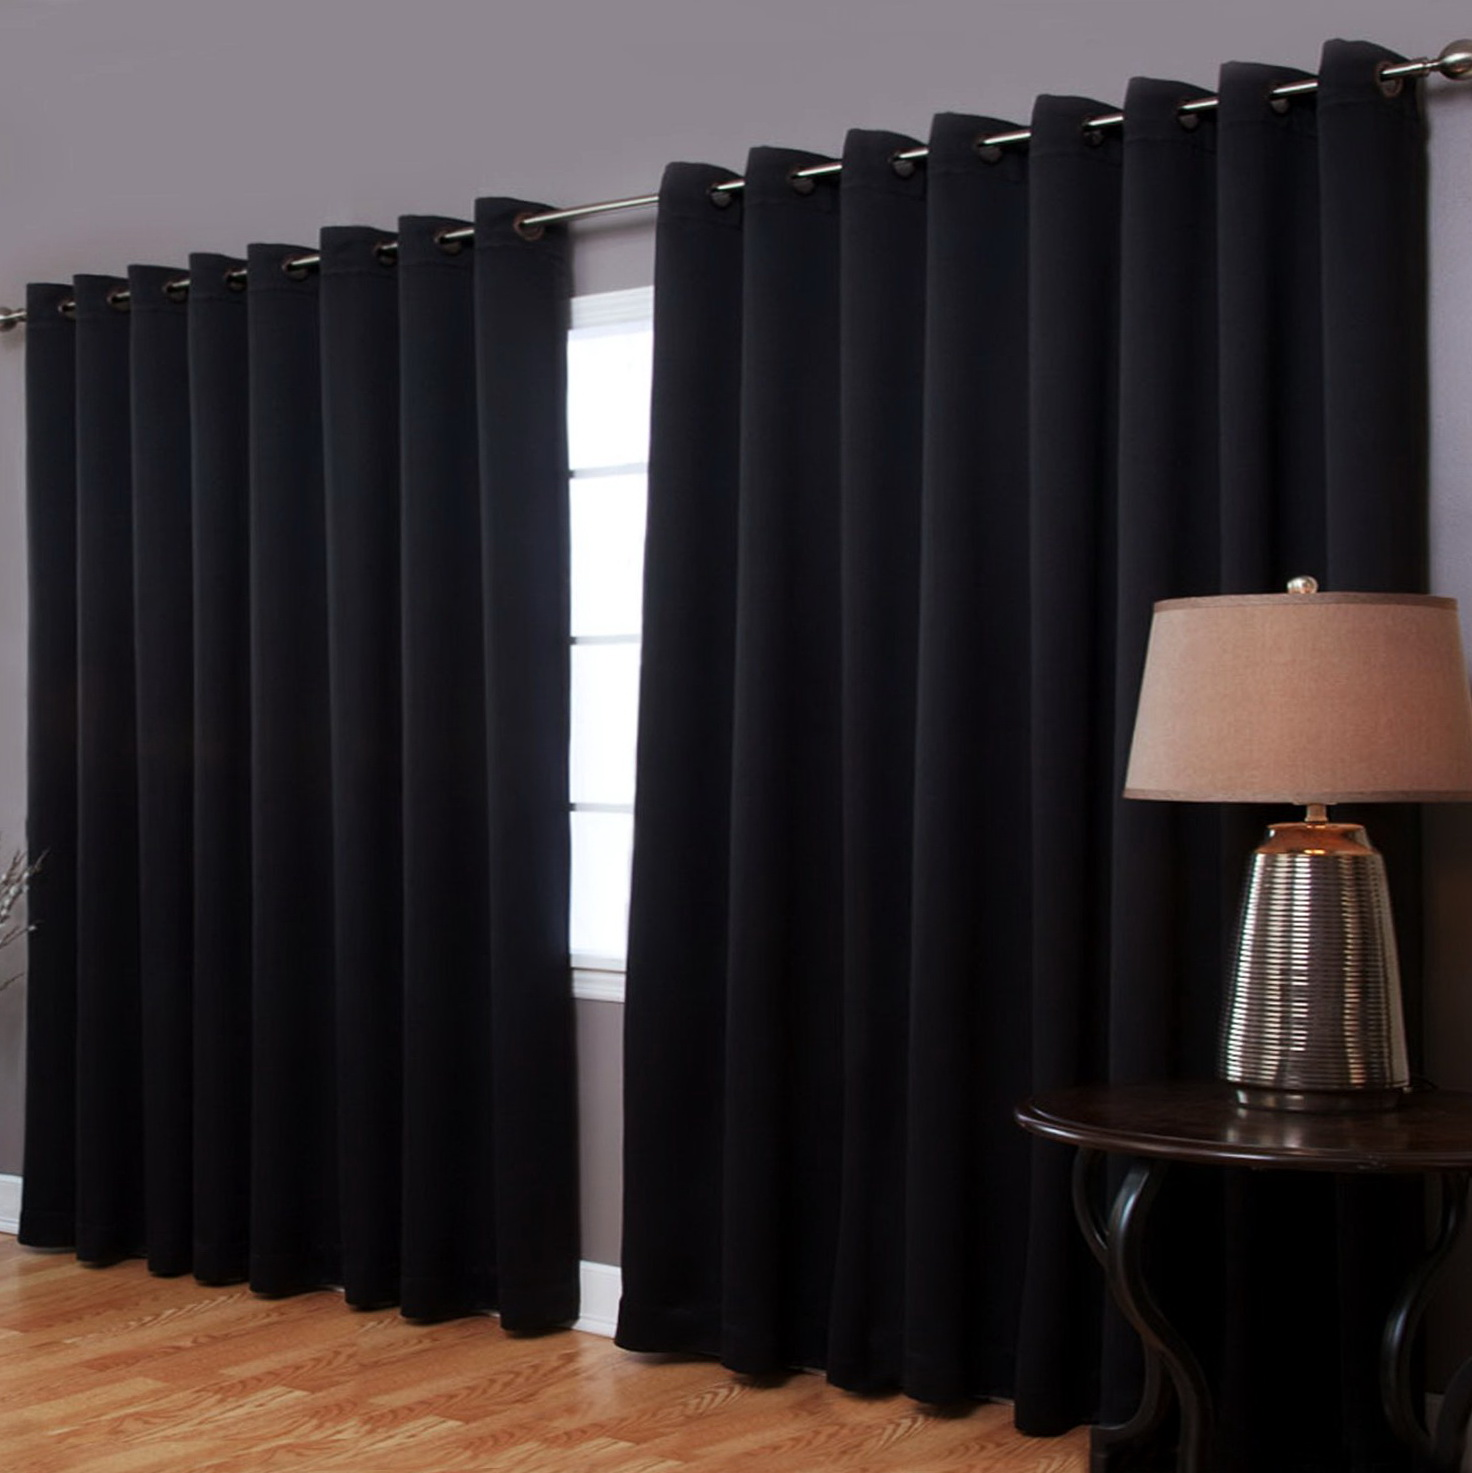 Curtains For Very Wide Windows 28 Images Curtain Rods Extra Wide Windows Youtube Curtains